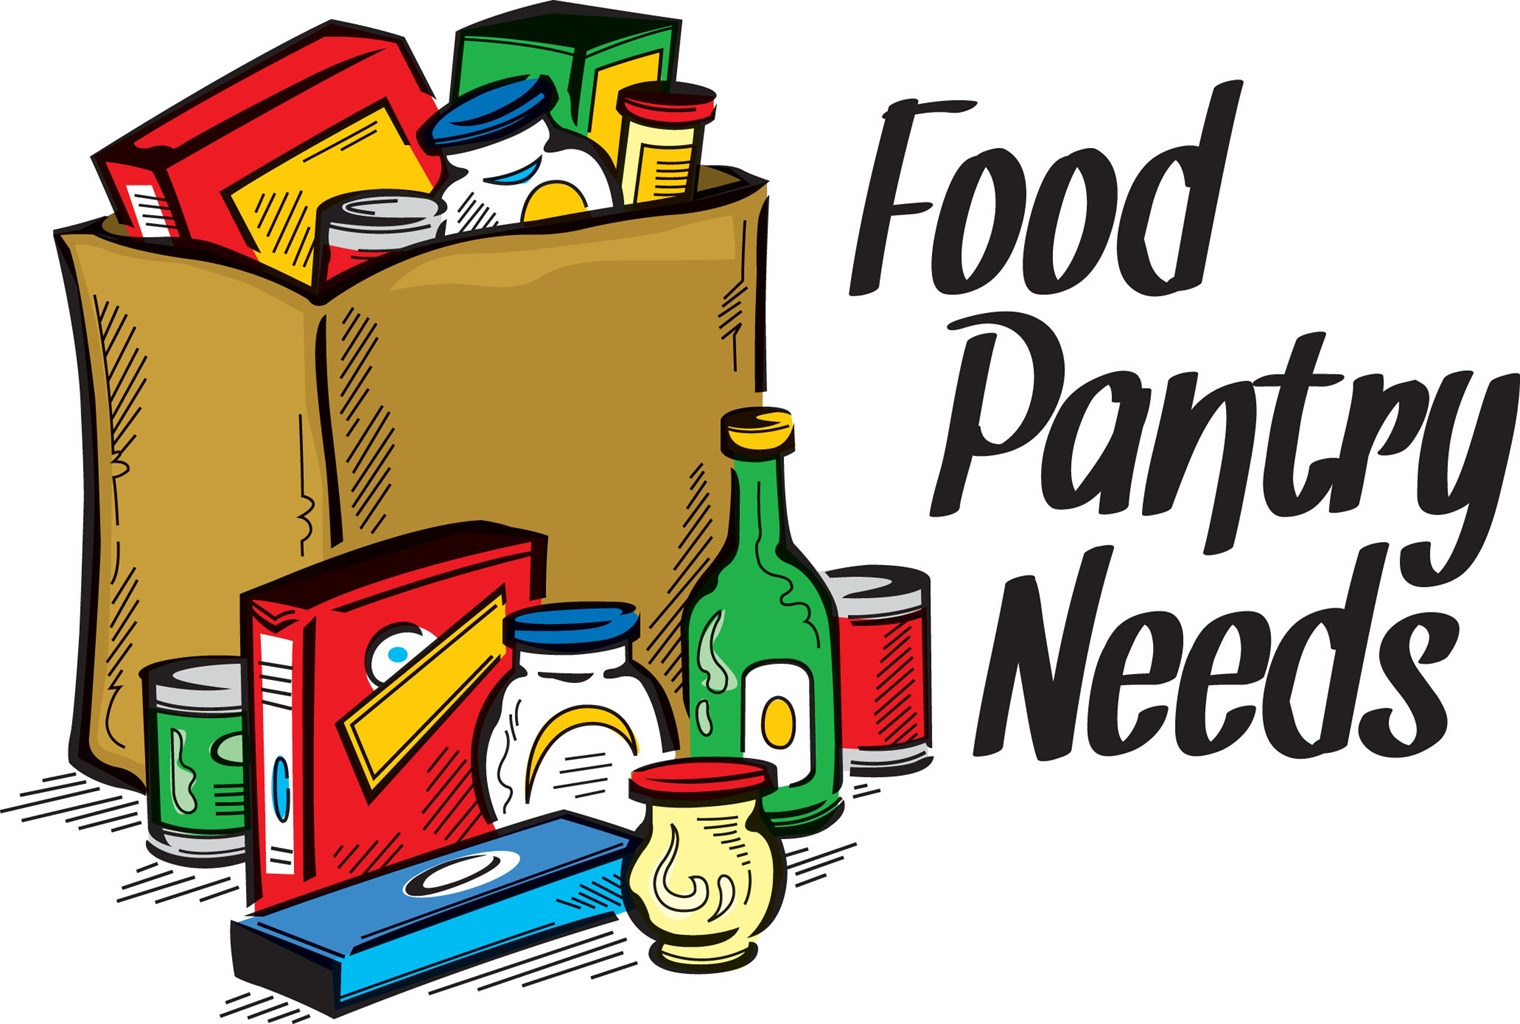 food-pantry-clipart-food-food-pantry-clip-art-2063_1390